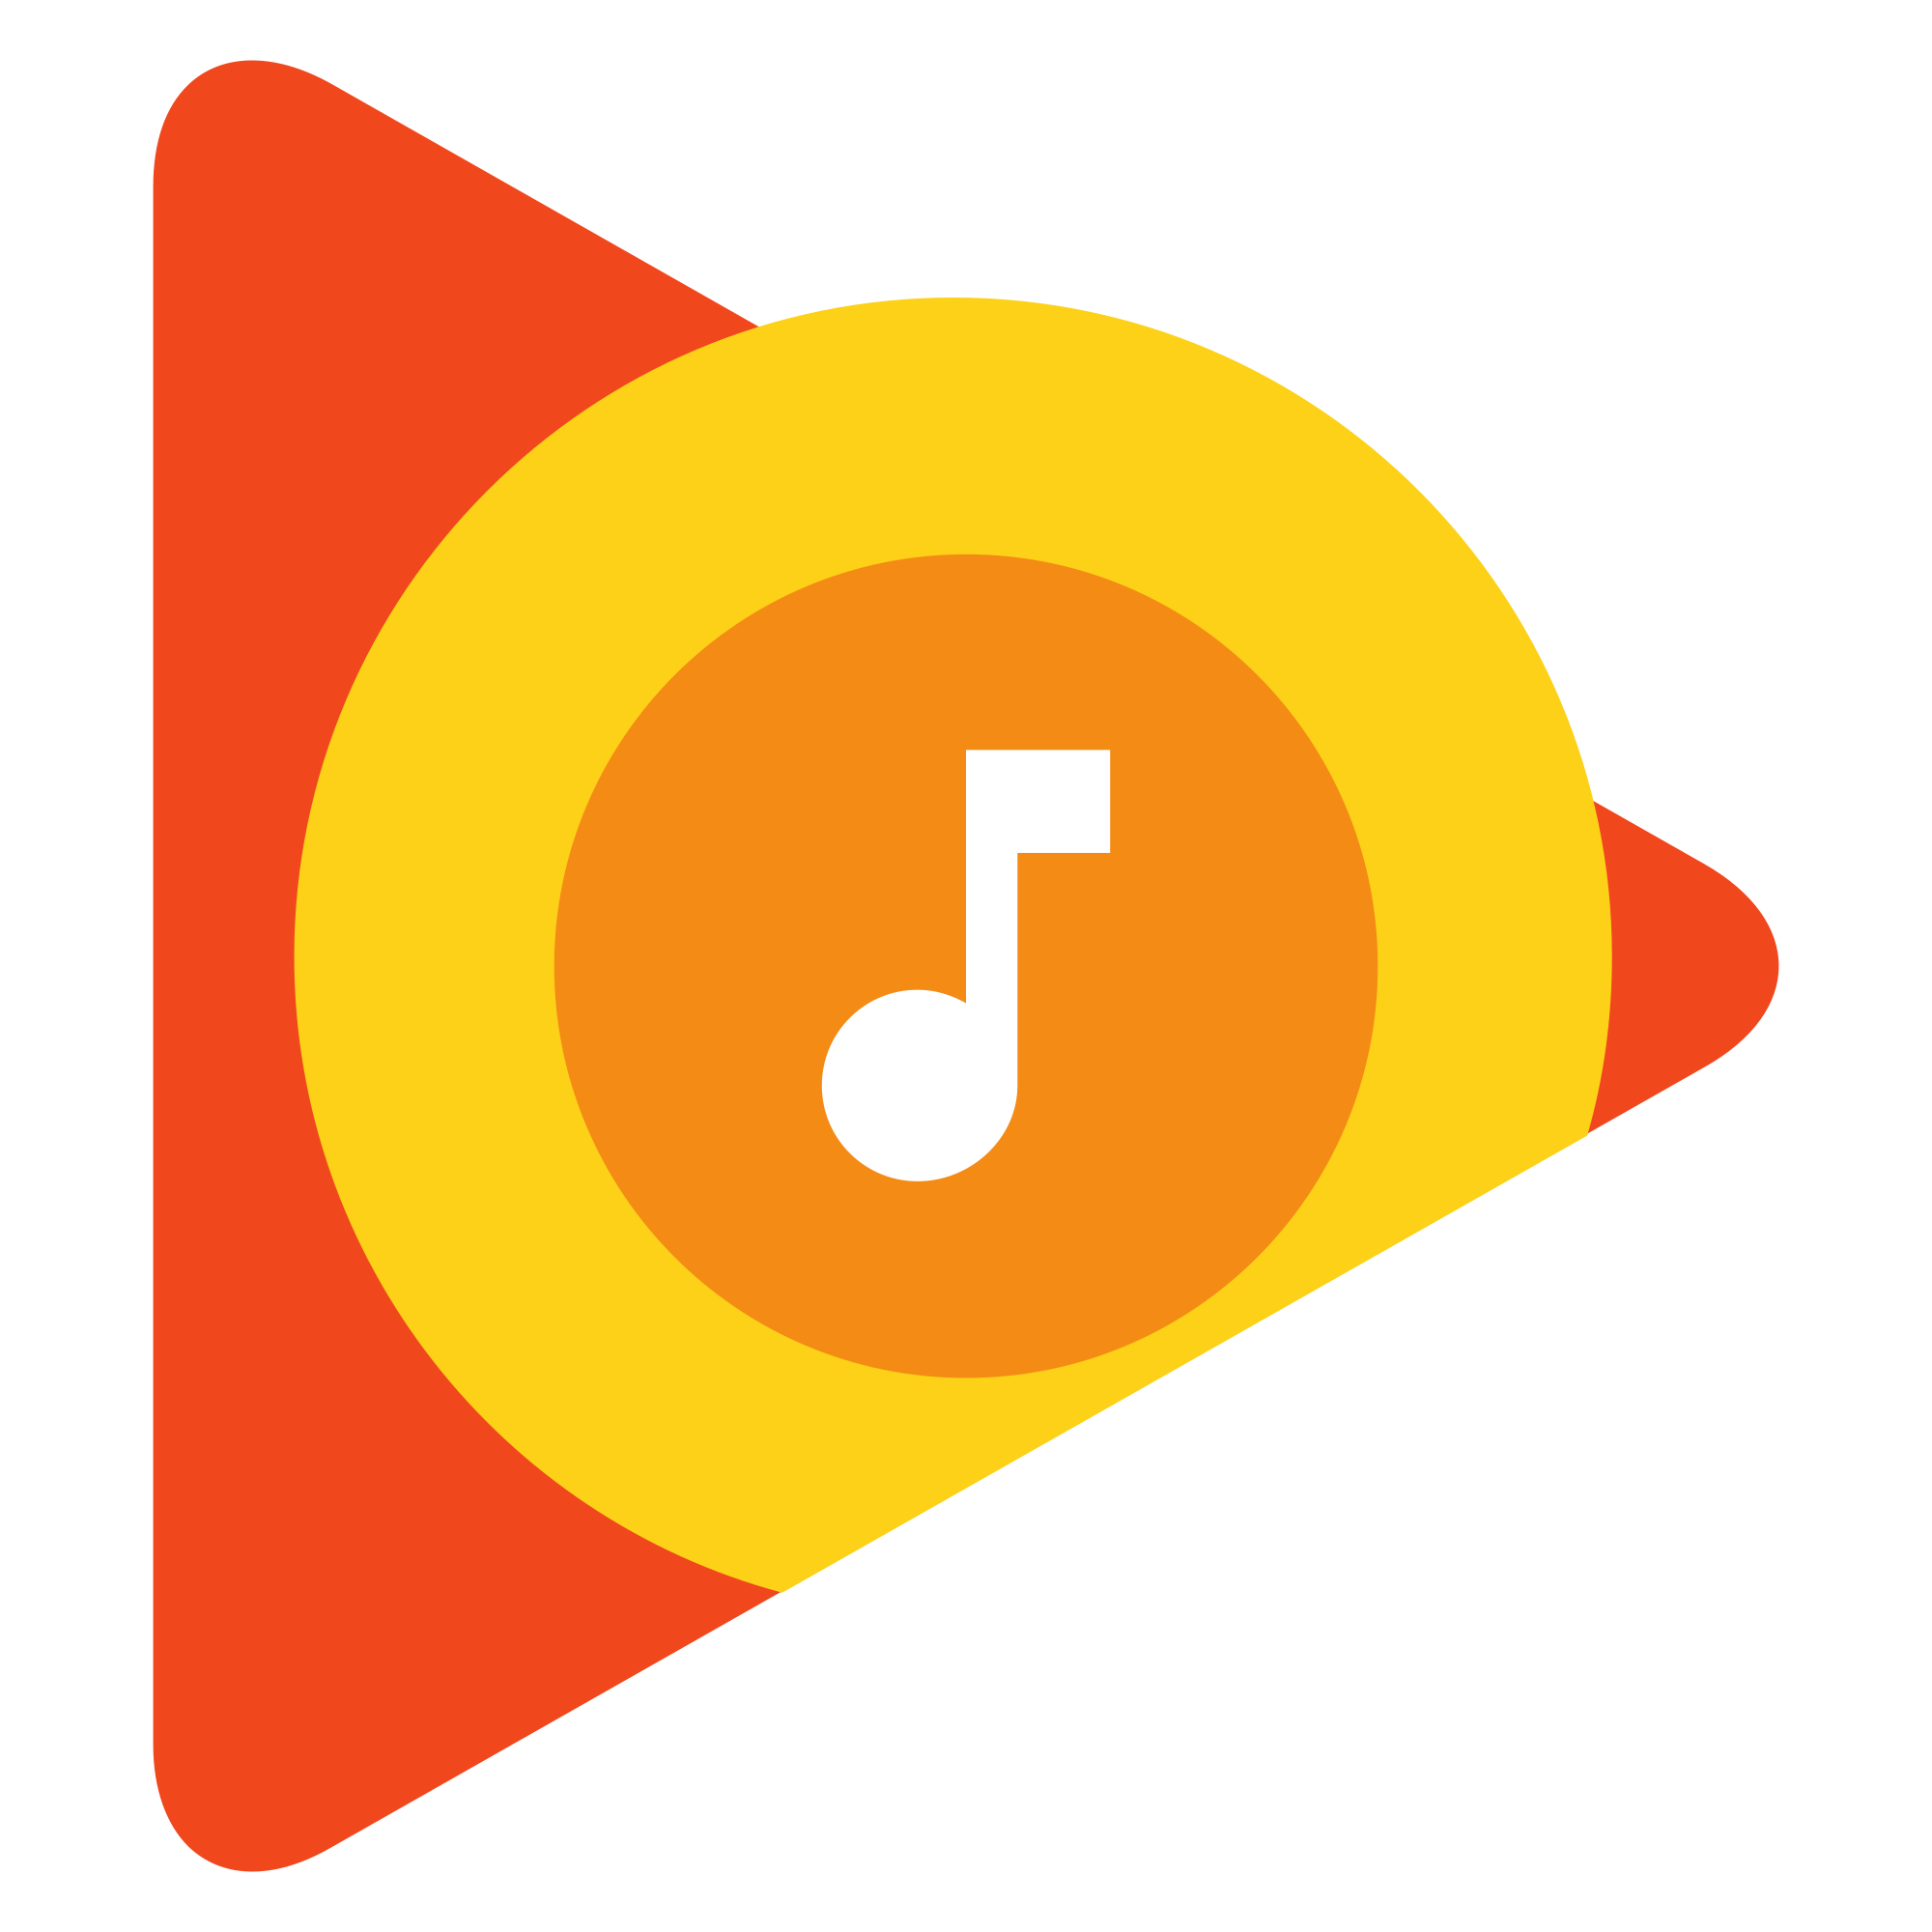 Google play music logo png. File triangle svg wikimedia